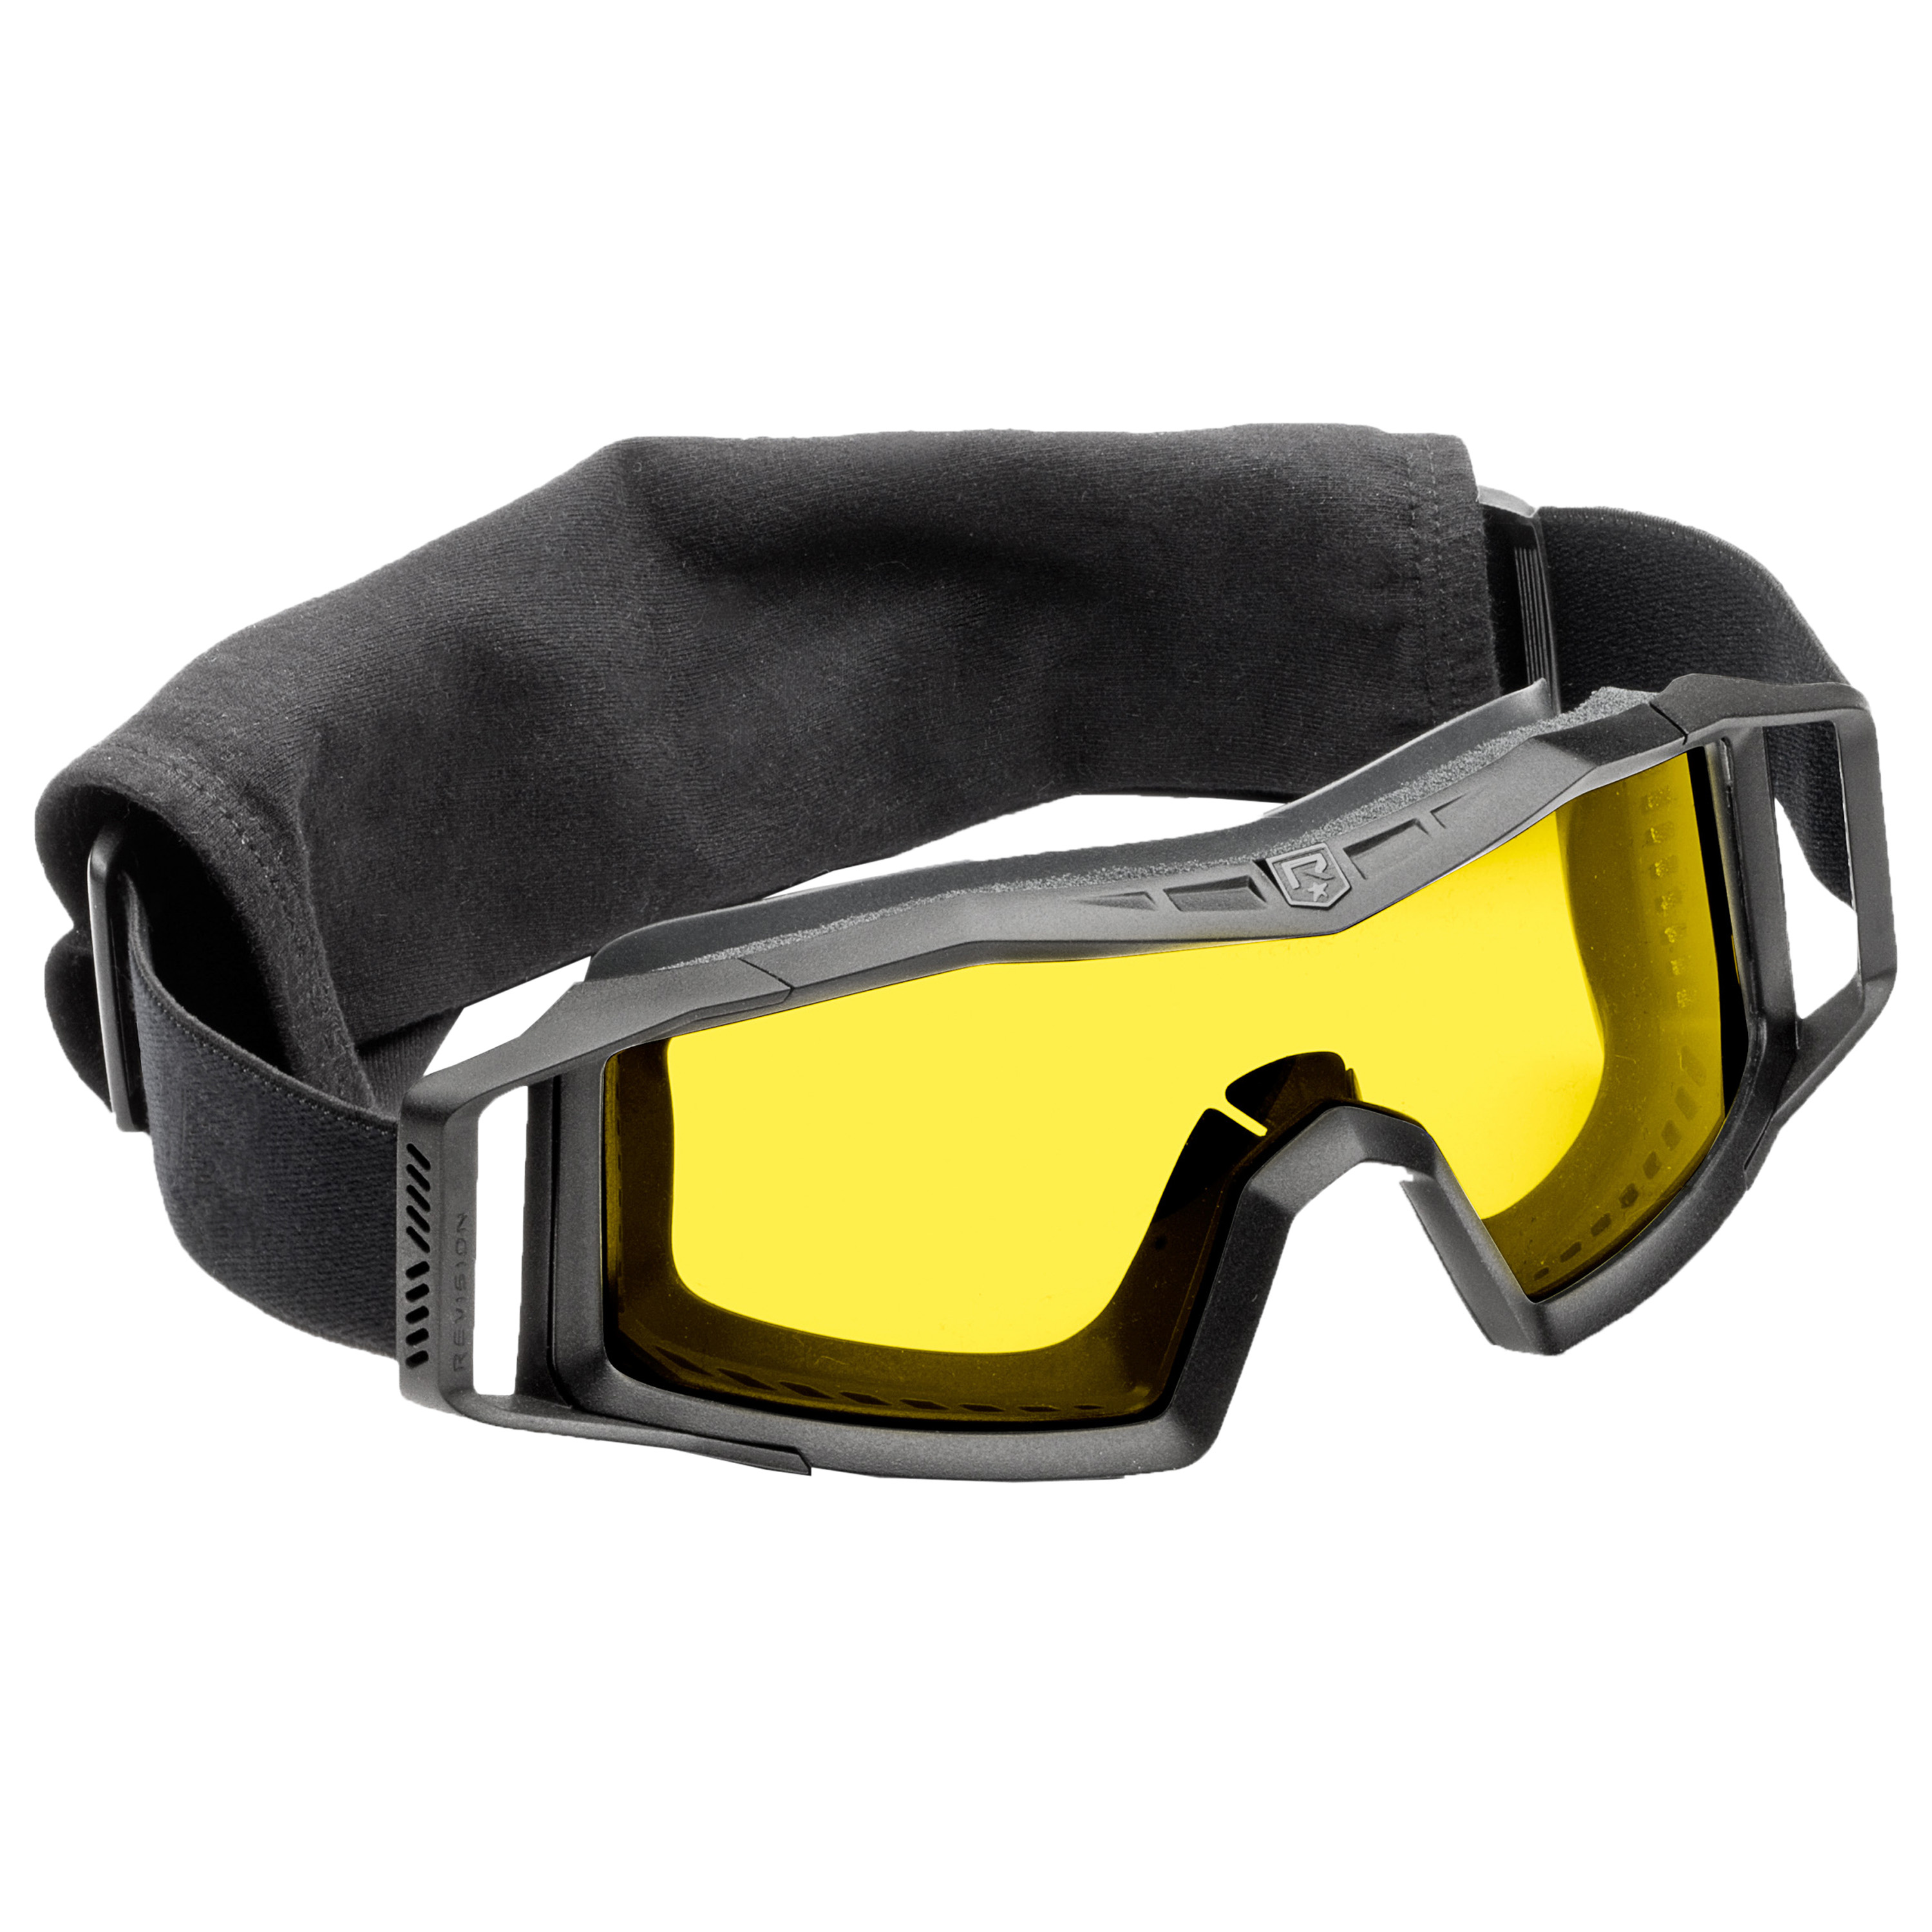 Revision Goggles Wolfspider Basic black/yellow lens